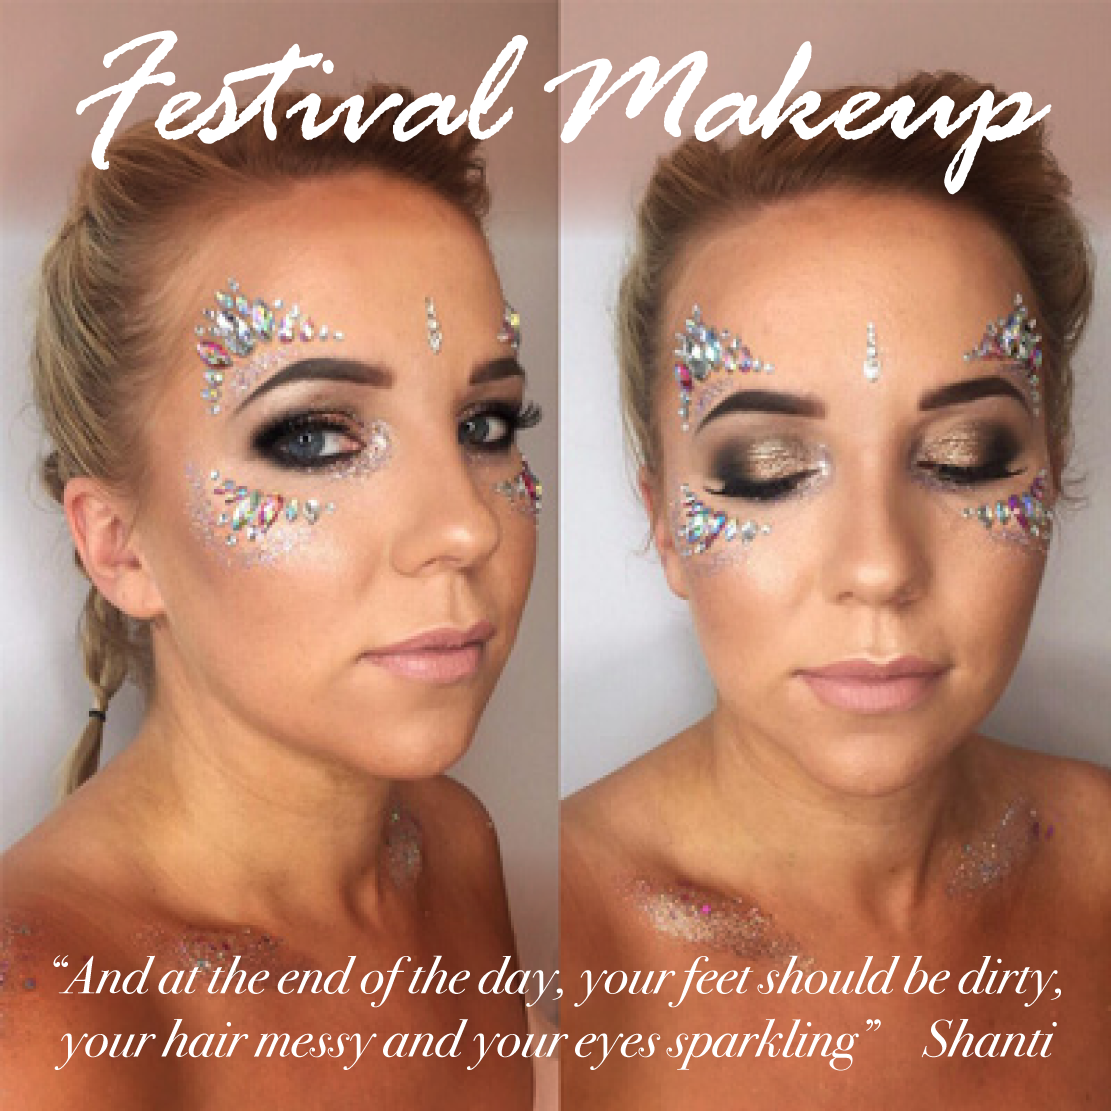 festival makeup prices - christiane dowling